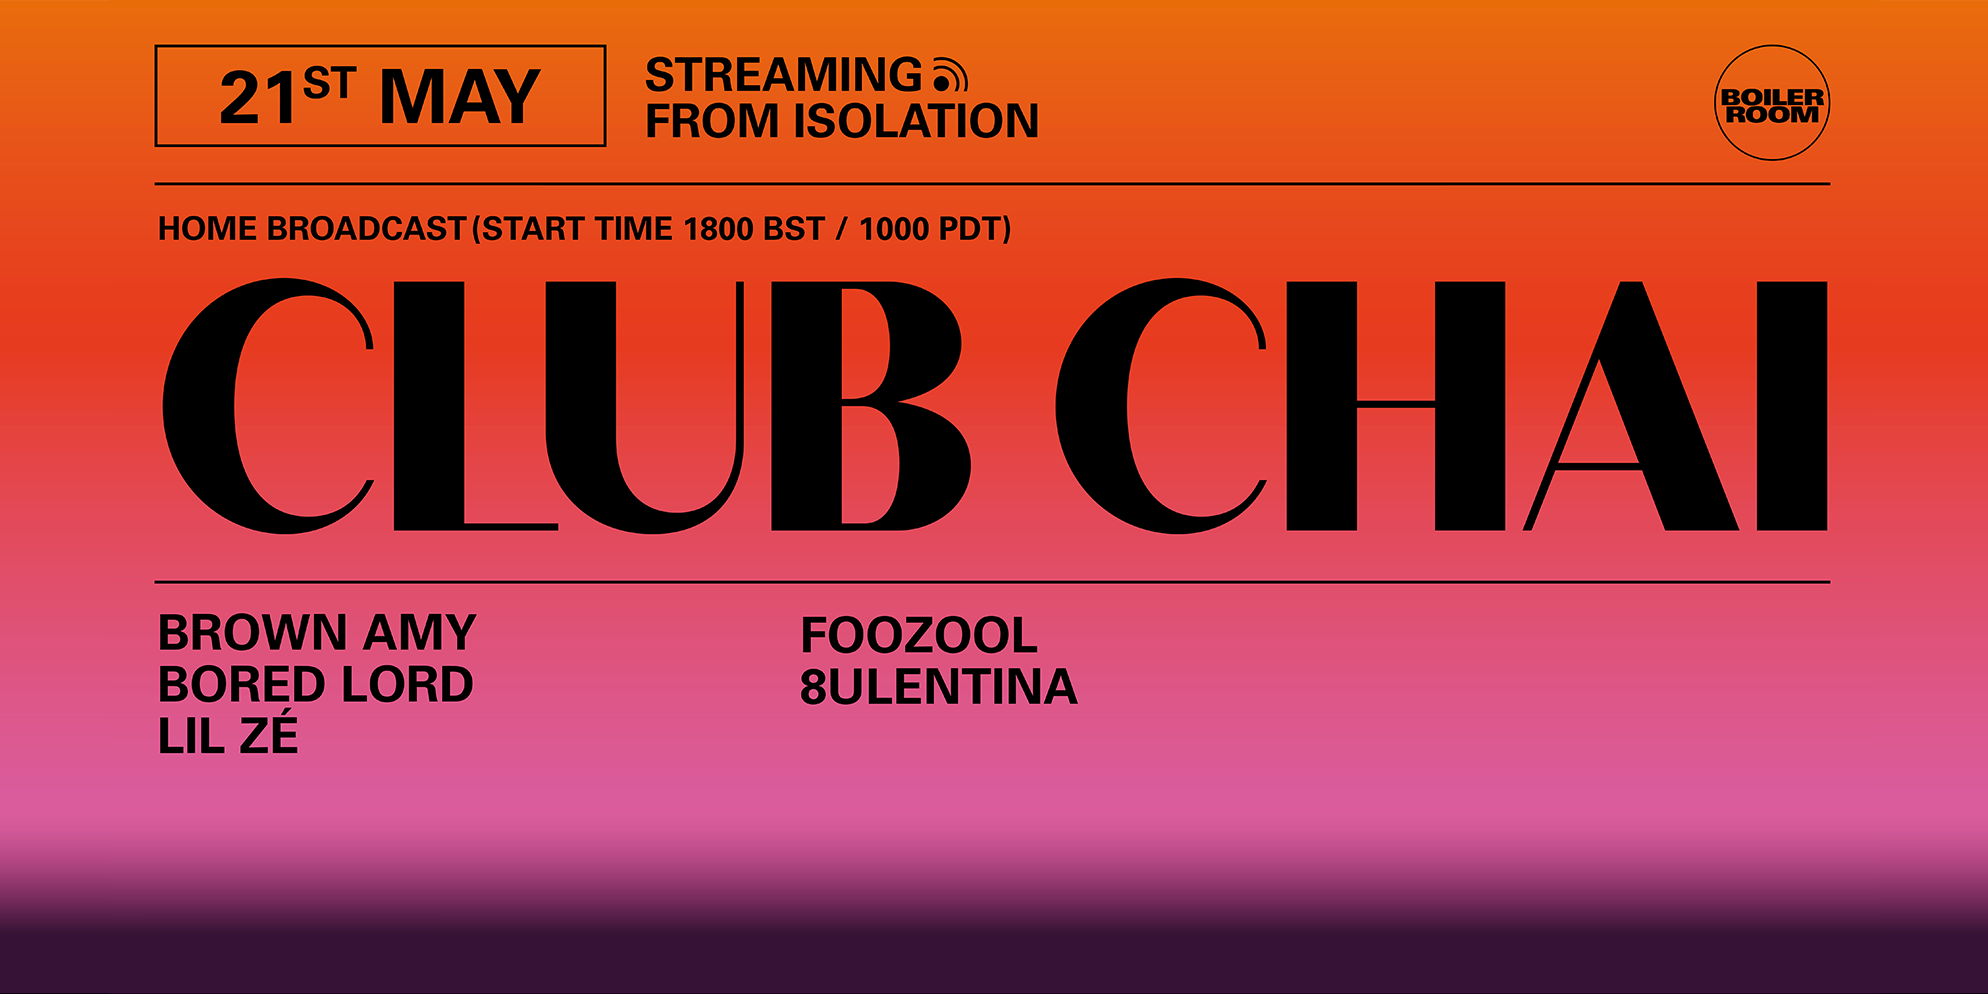 BOILER ROOM X BALLANTINE'S | Streaming from Isolation | Club Chai